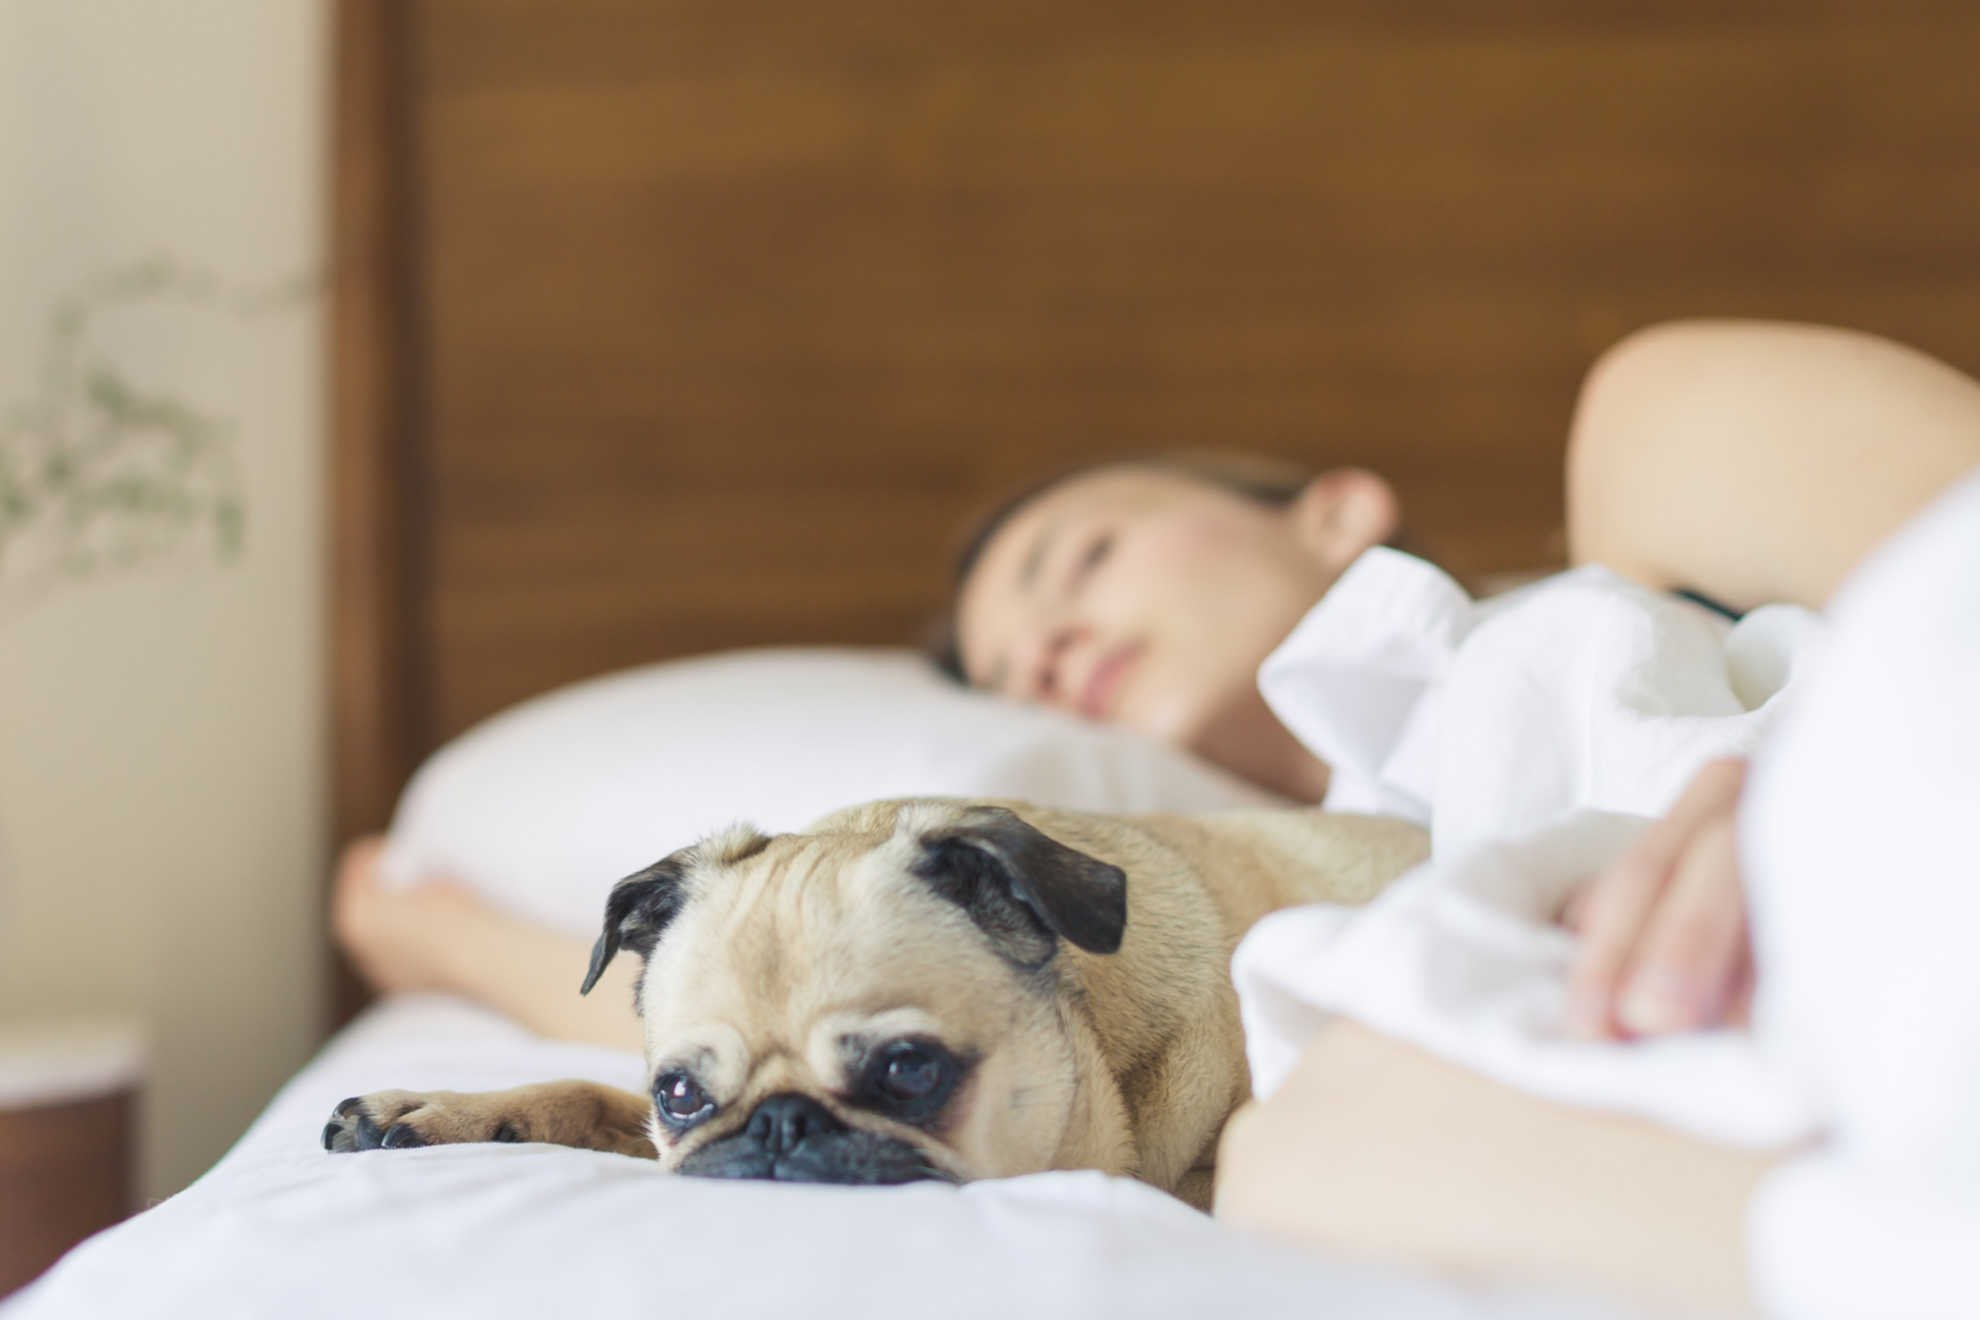 Woman in bed, sleeping and relaxing with a cute pug dog - ways to overcome stress